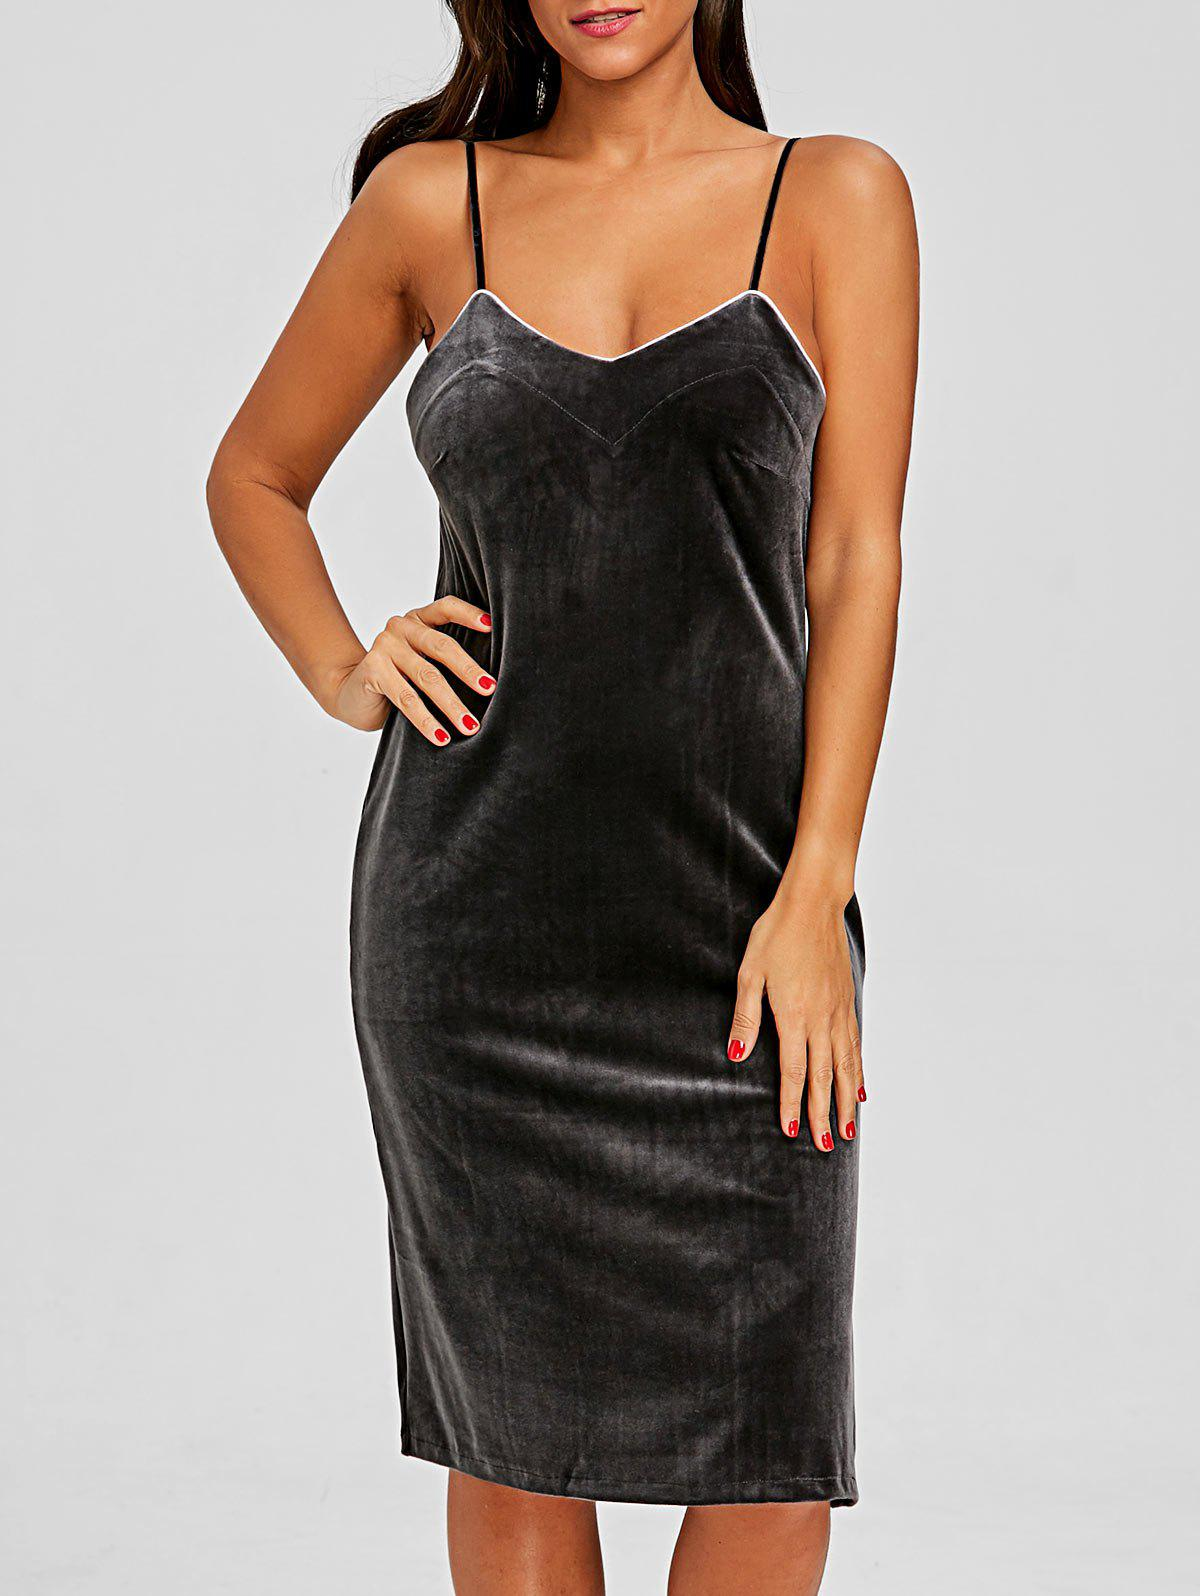 Lingerie Spaghetti Strap Dress - GRAY M